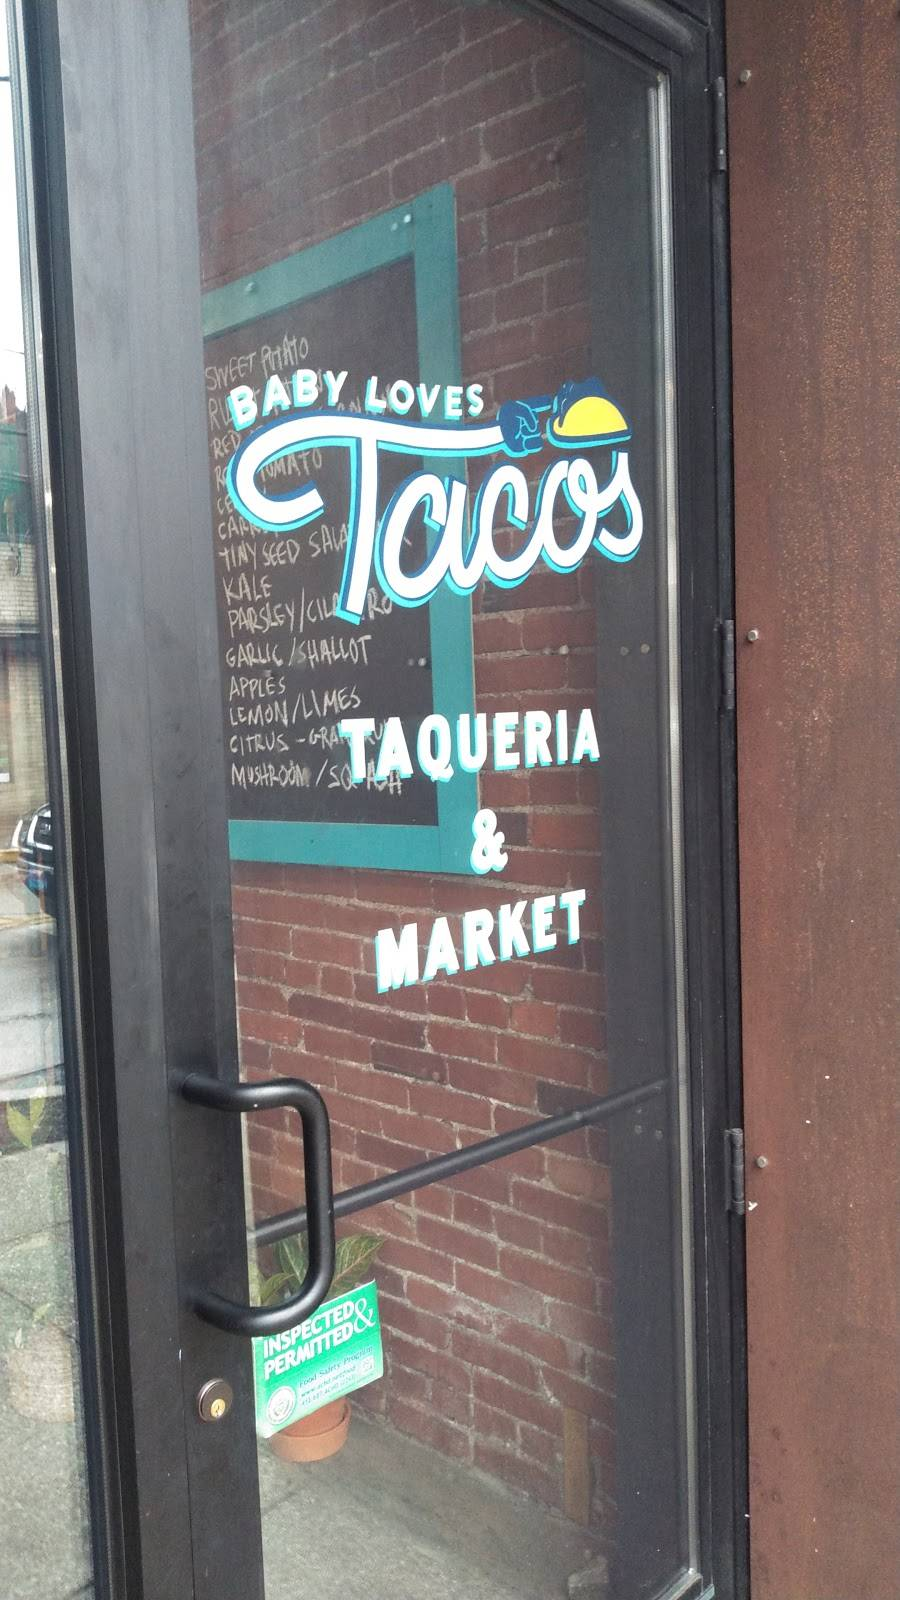 Baby Loves Tacos | restaurant | 227 North Ave, Millvale, PA 15209, USA